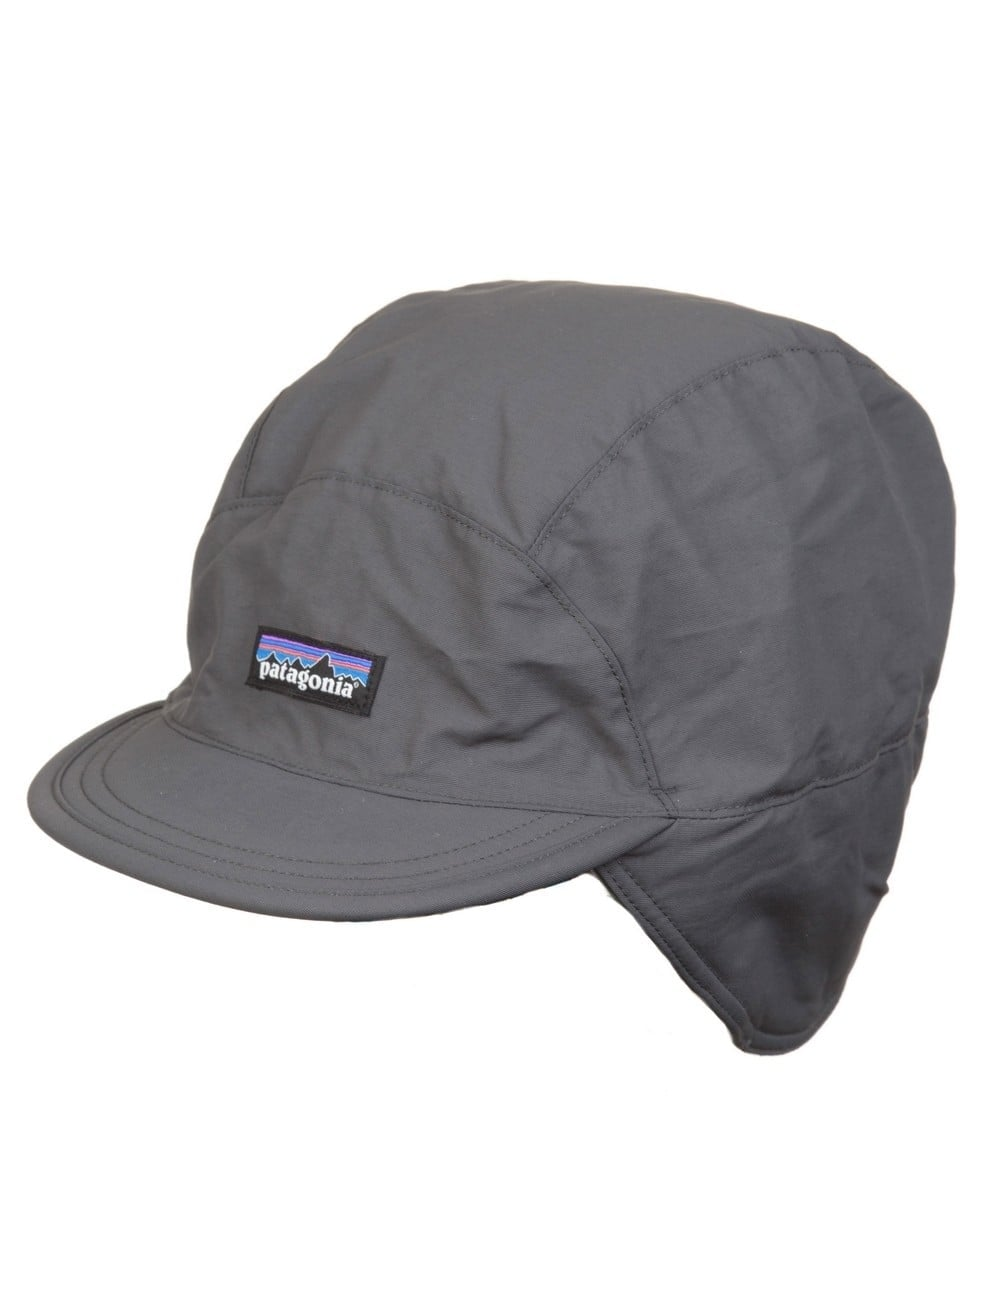 5ac44bf835d Patagonia Shelled Synchilla Duckbill Cap - Forge Grey - Accessories ...